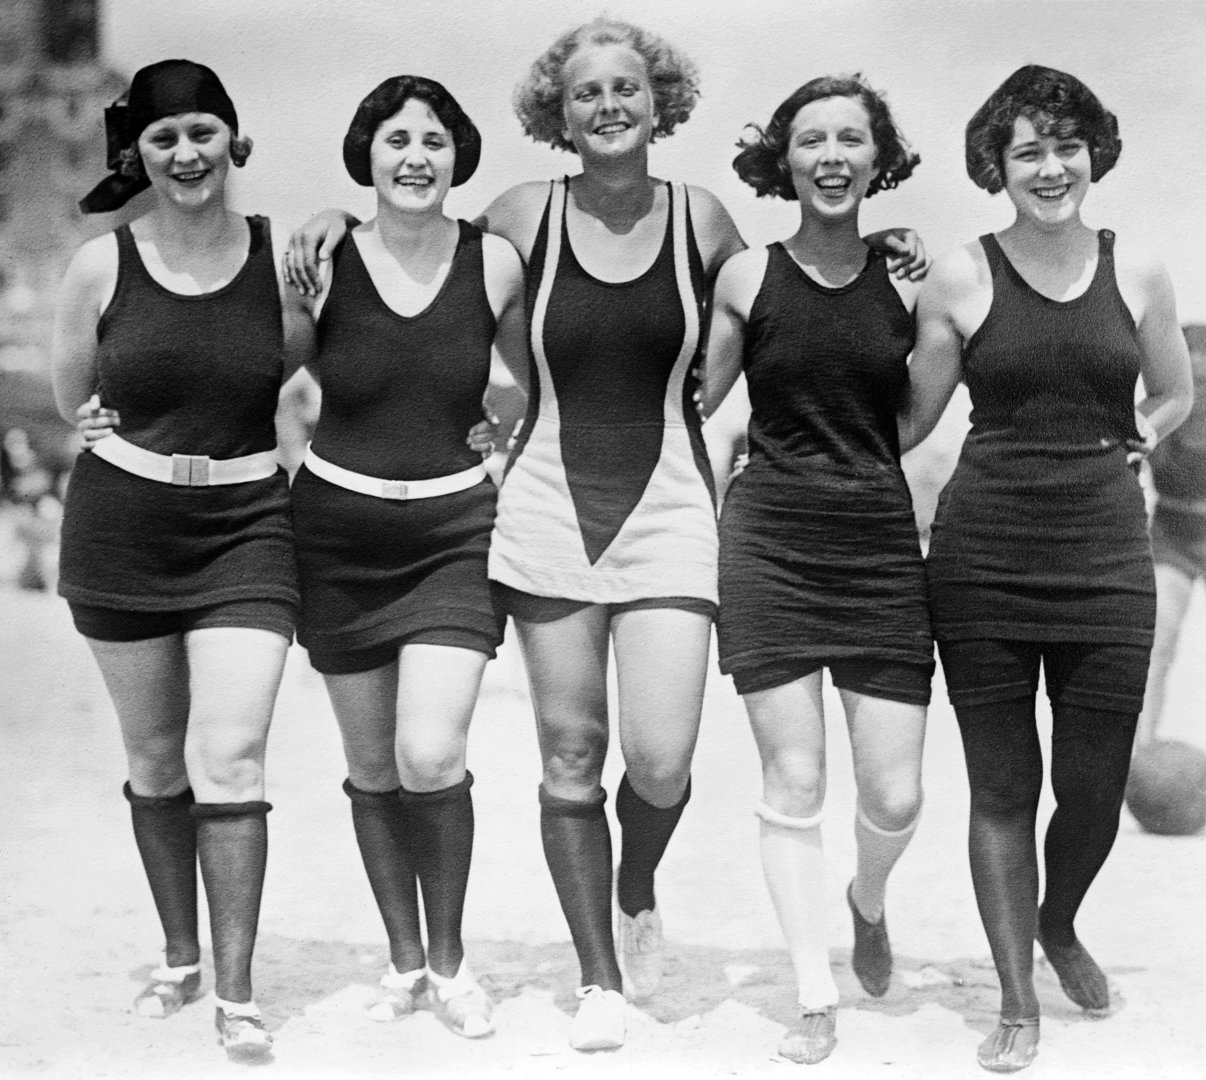 Five women walking arm-in-arm on the beach wearing wool bathing suits, 1925